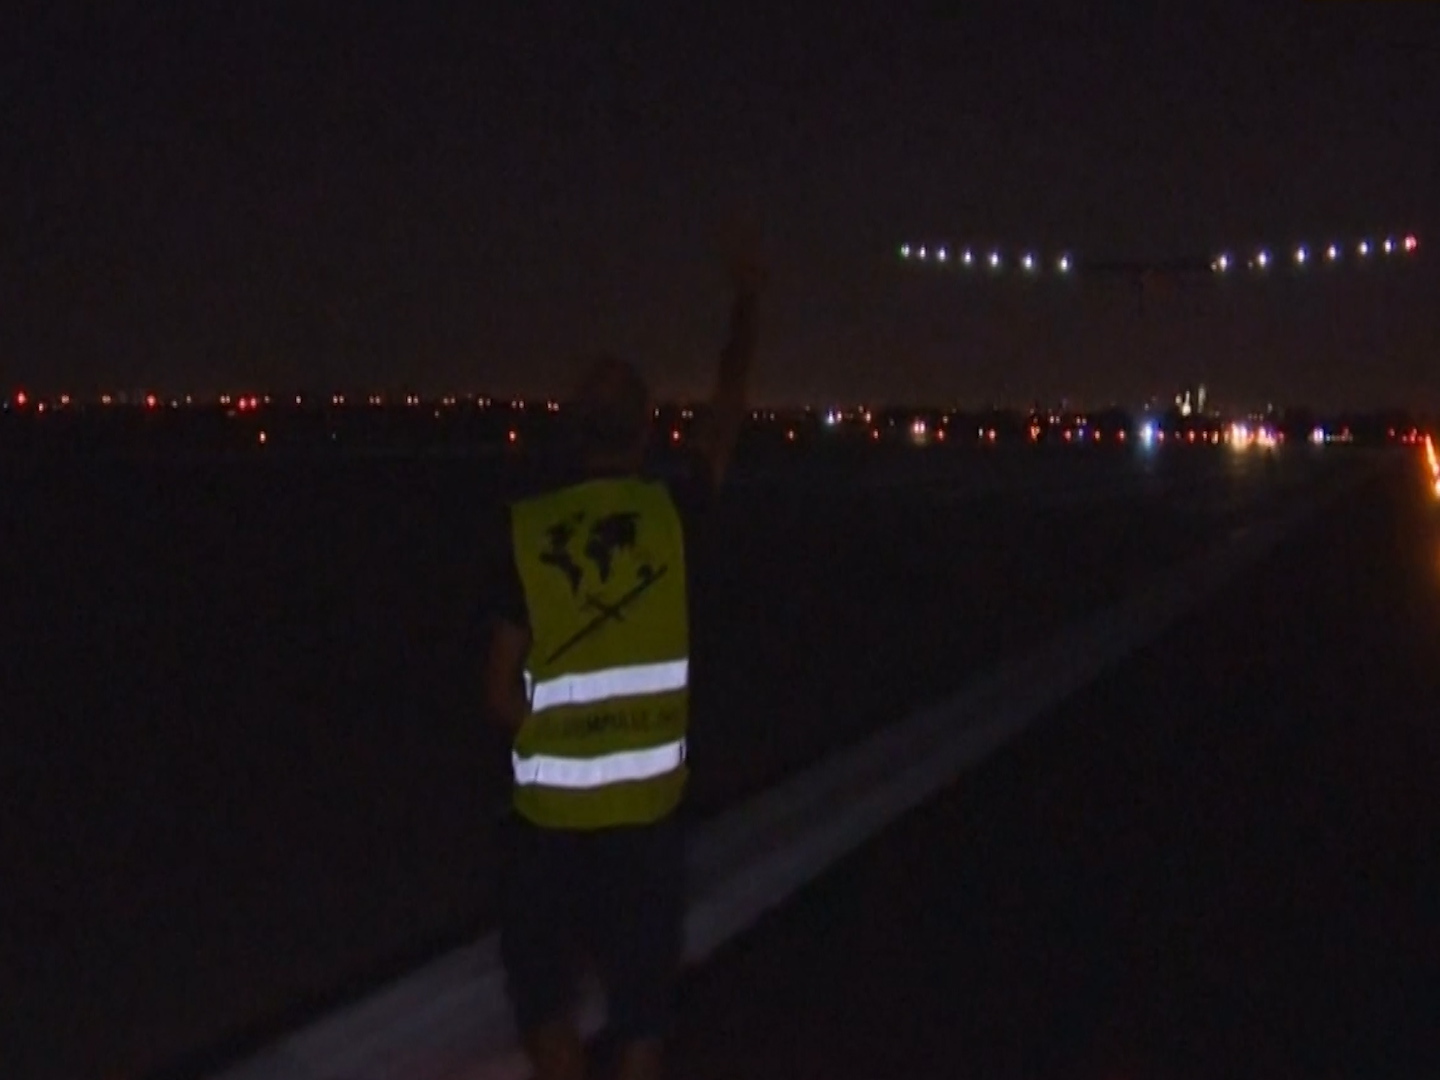 Solar Impulse takes off from New York